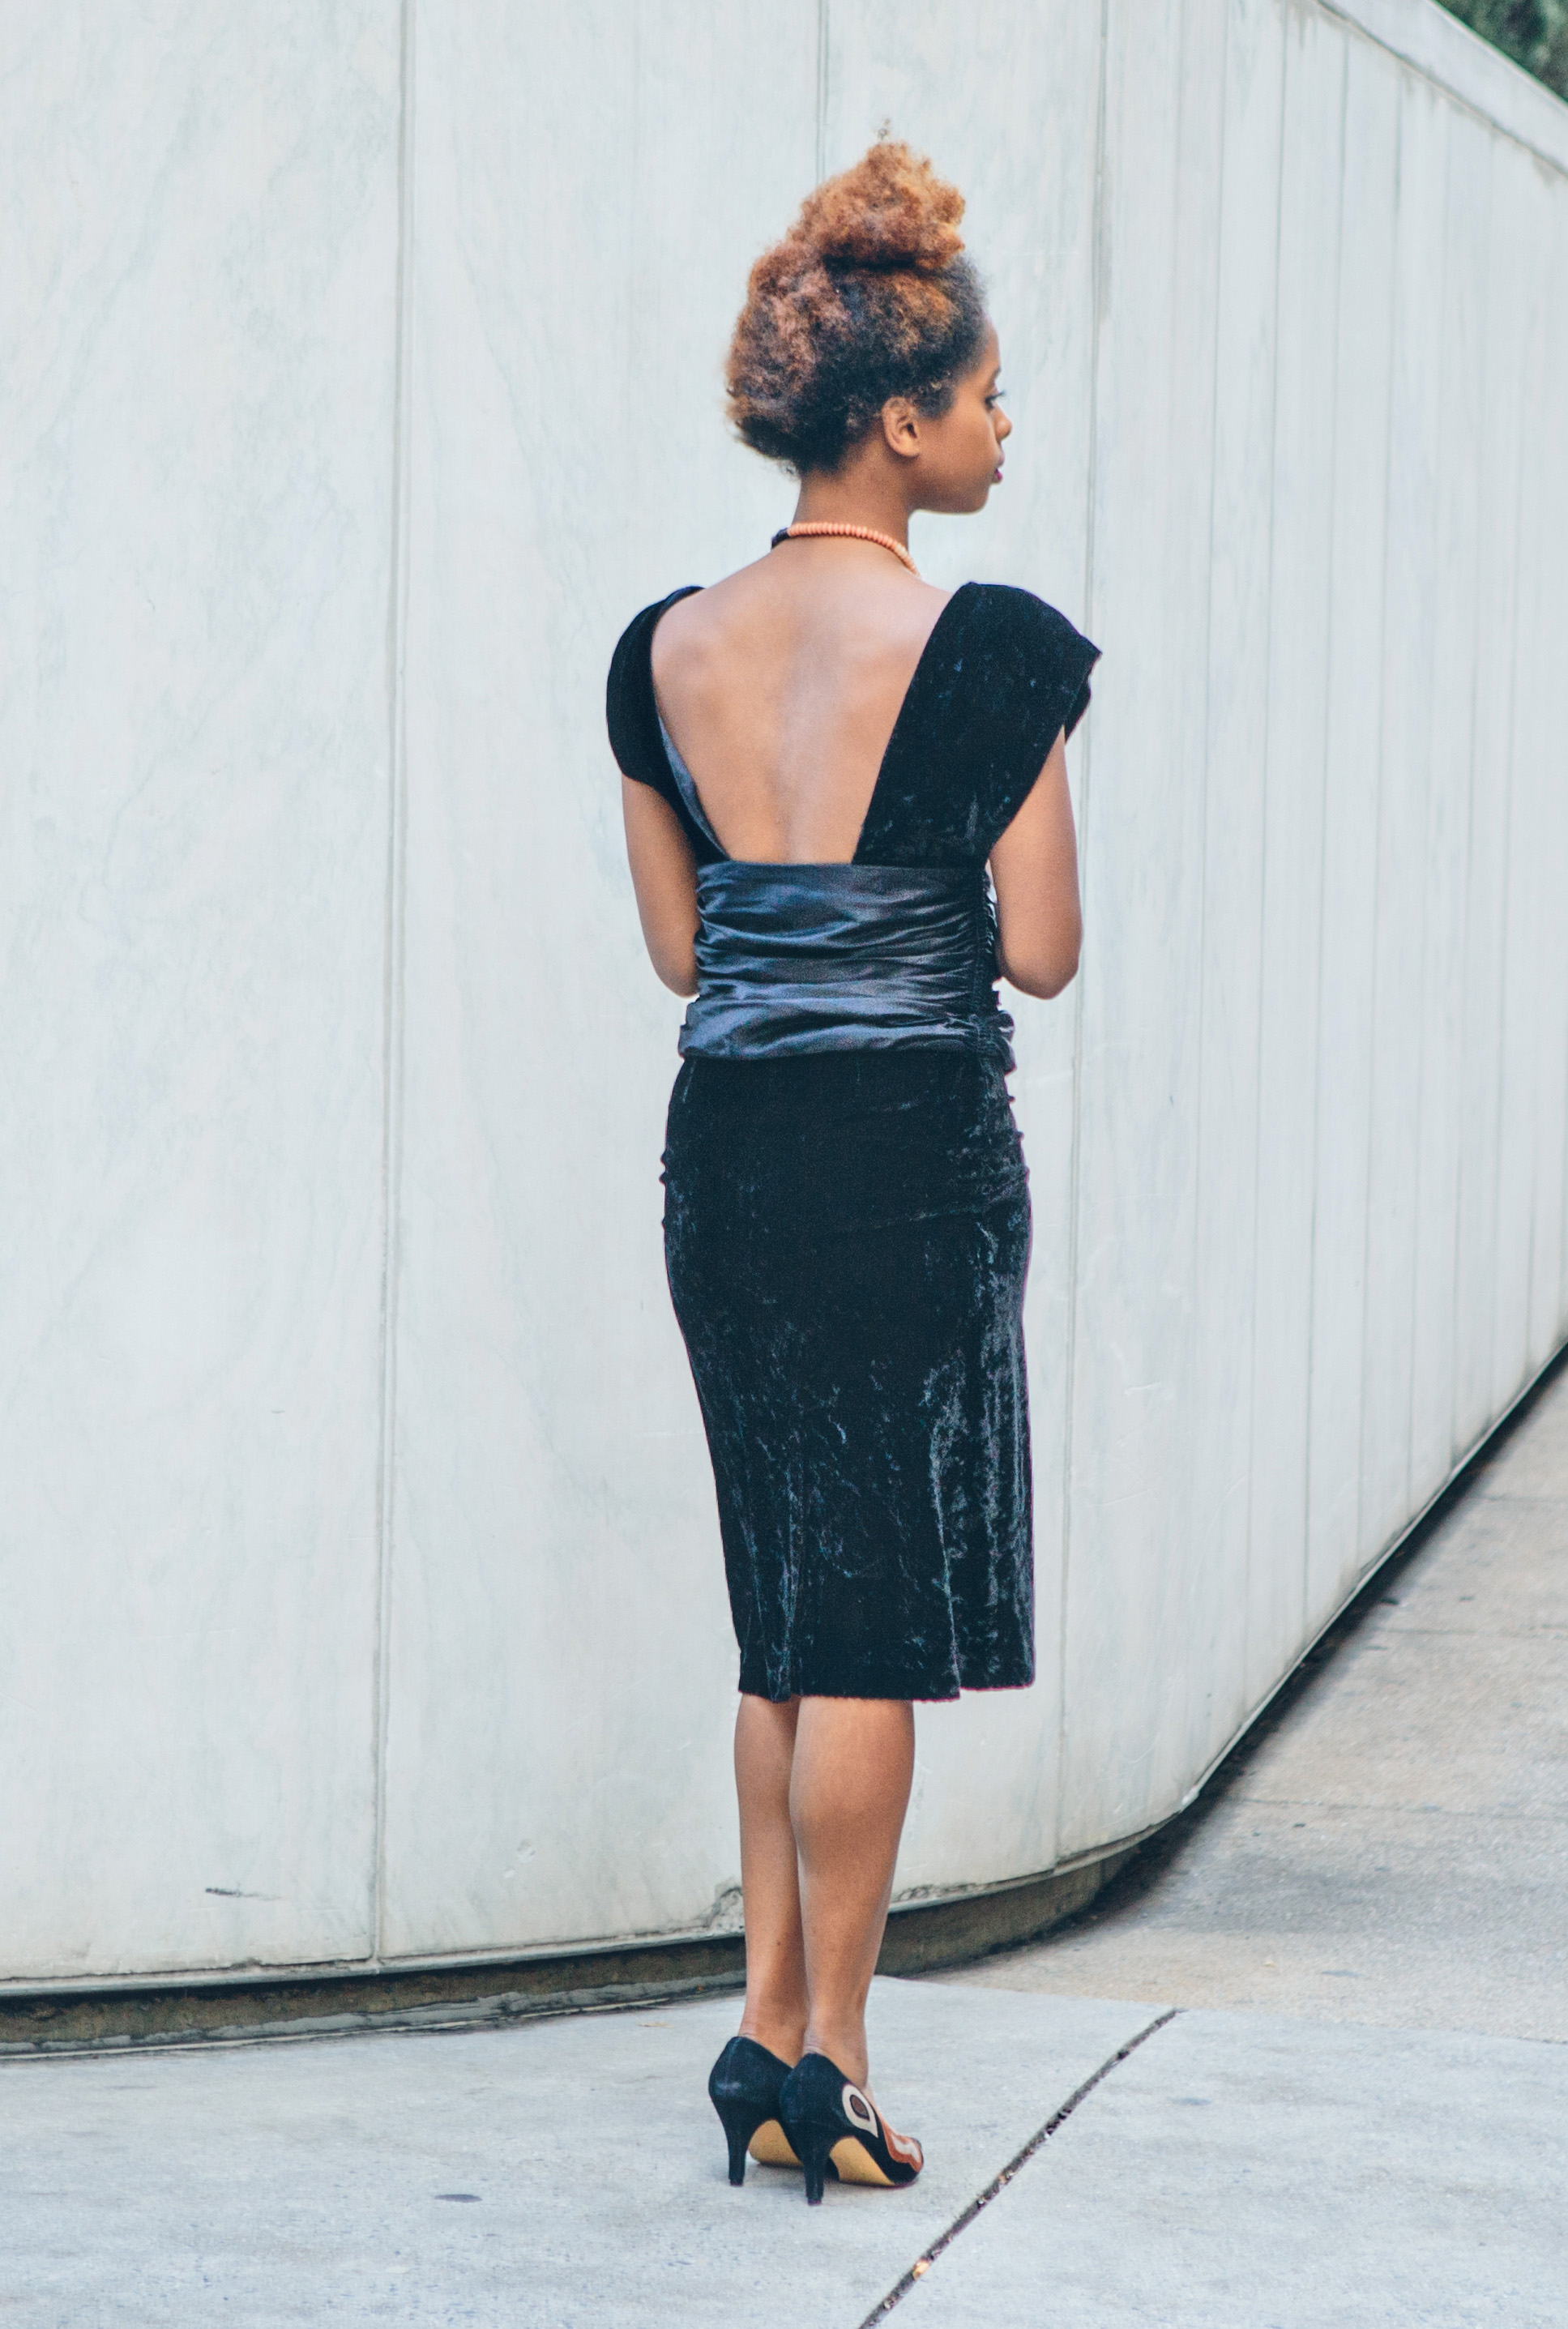 90s black velvet cocktail dress with beautiful open back ($36) | beaded necklace ($21) |suede patterned heels ($27)